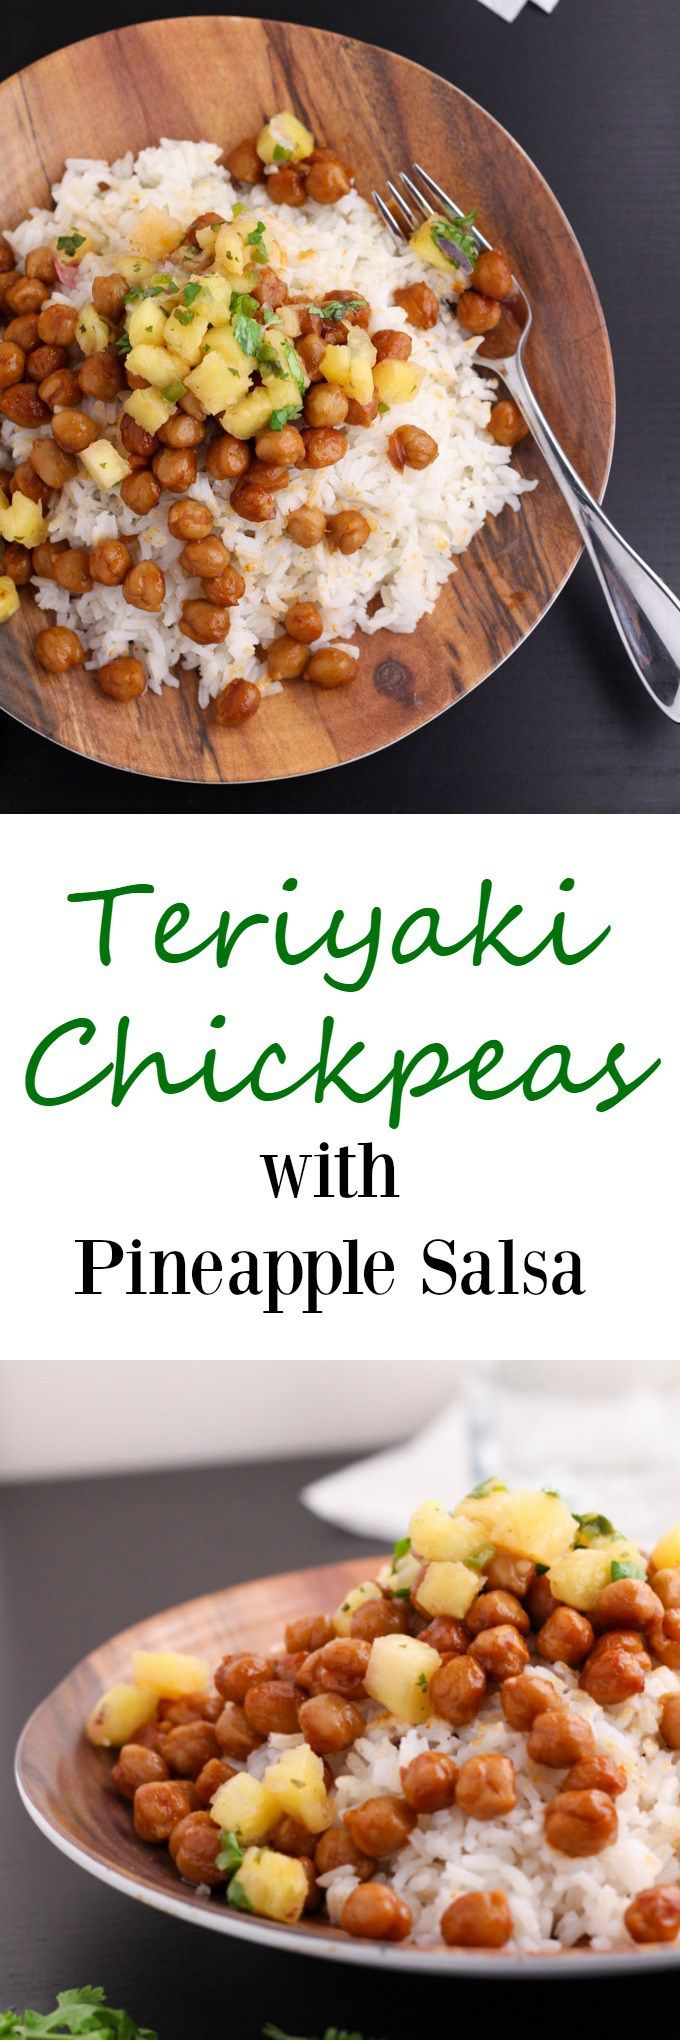 A really simple, delicious, and vegan recipe for teriyaki chickpeas. Serve over rice and top with pineapple salsa. It's a yummy and easy dinner. www.cookingismessy.com